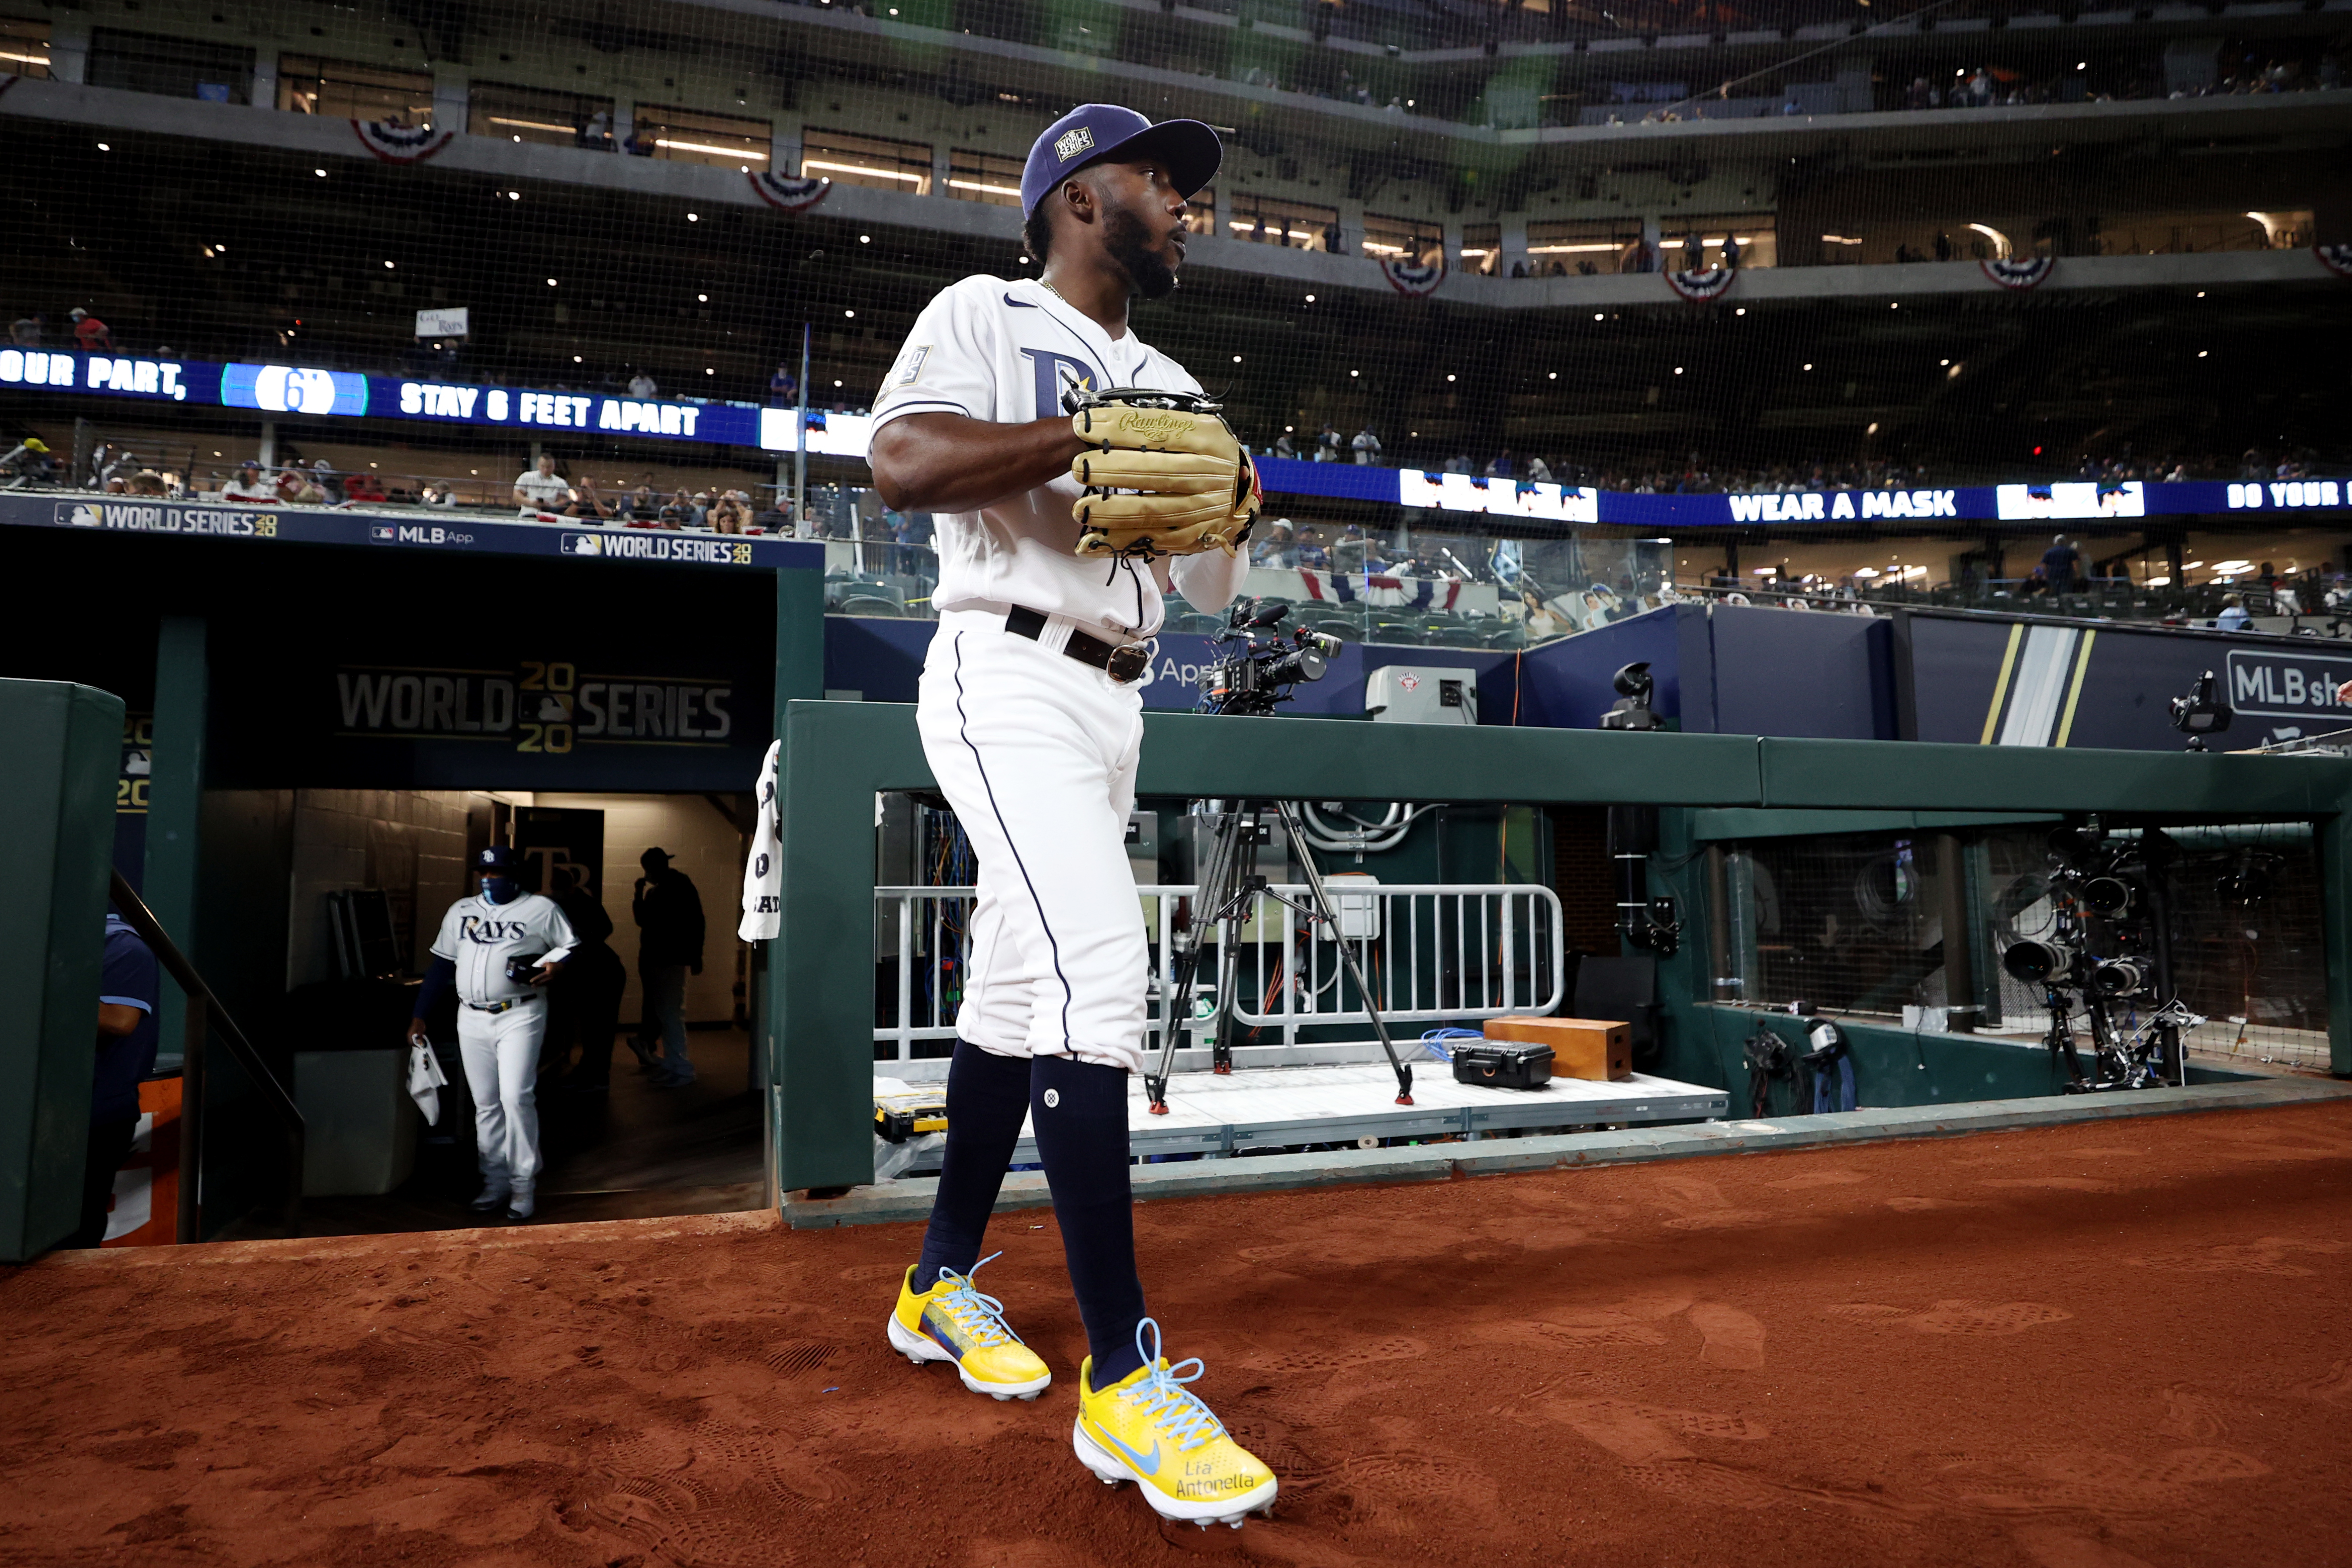 world series randy arozarena might not be on the rays if not for this scout https sports yahoo com randy arozarenas rise to rays postseason hero began with this scouts glowing report 011317739 html